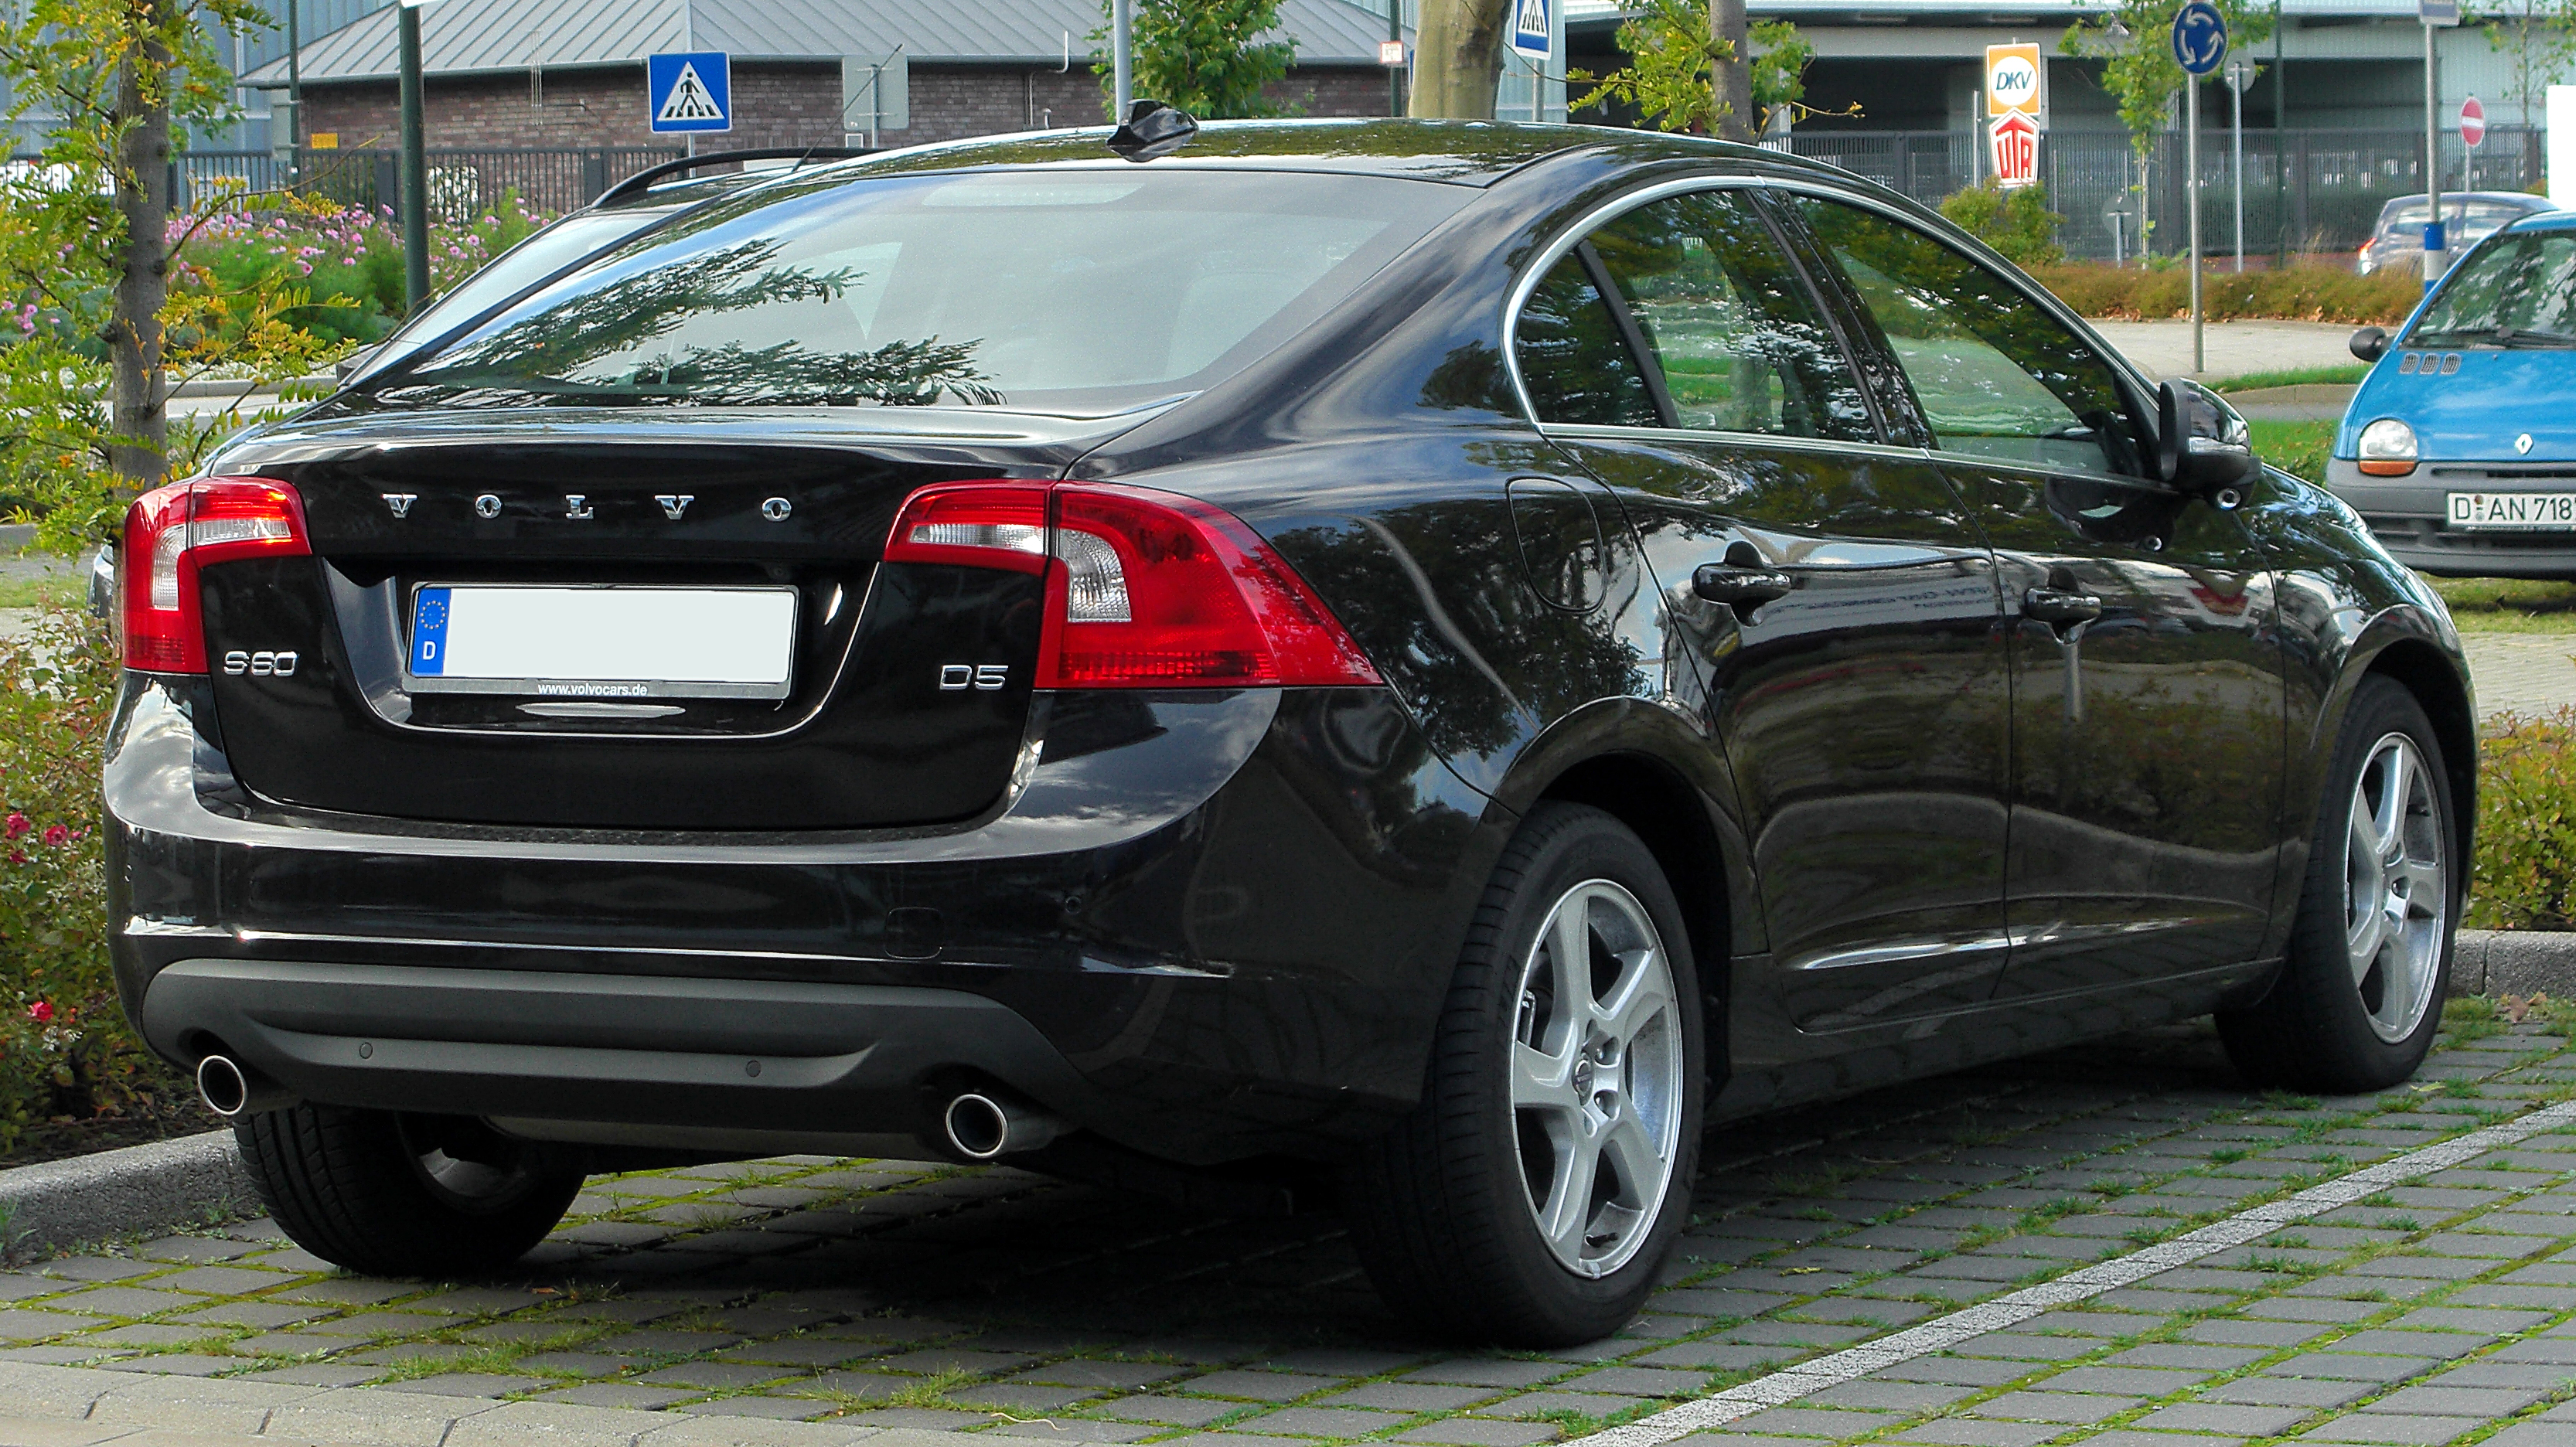 2014 besides 2015 Volvo S60 T6 Drive E Wallpapers 89452 besides 2014 Volvo Xc70 likewise Volvo Xc60 R Design 09 in addition Volvo V40 Cross Country D2. on 2014 volvo xc60 awd